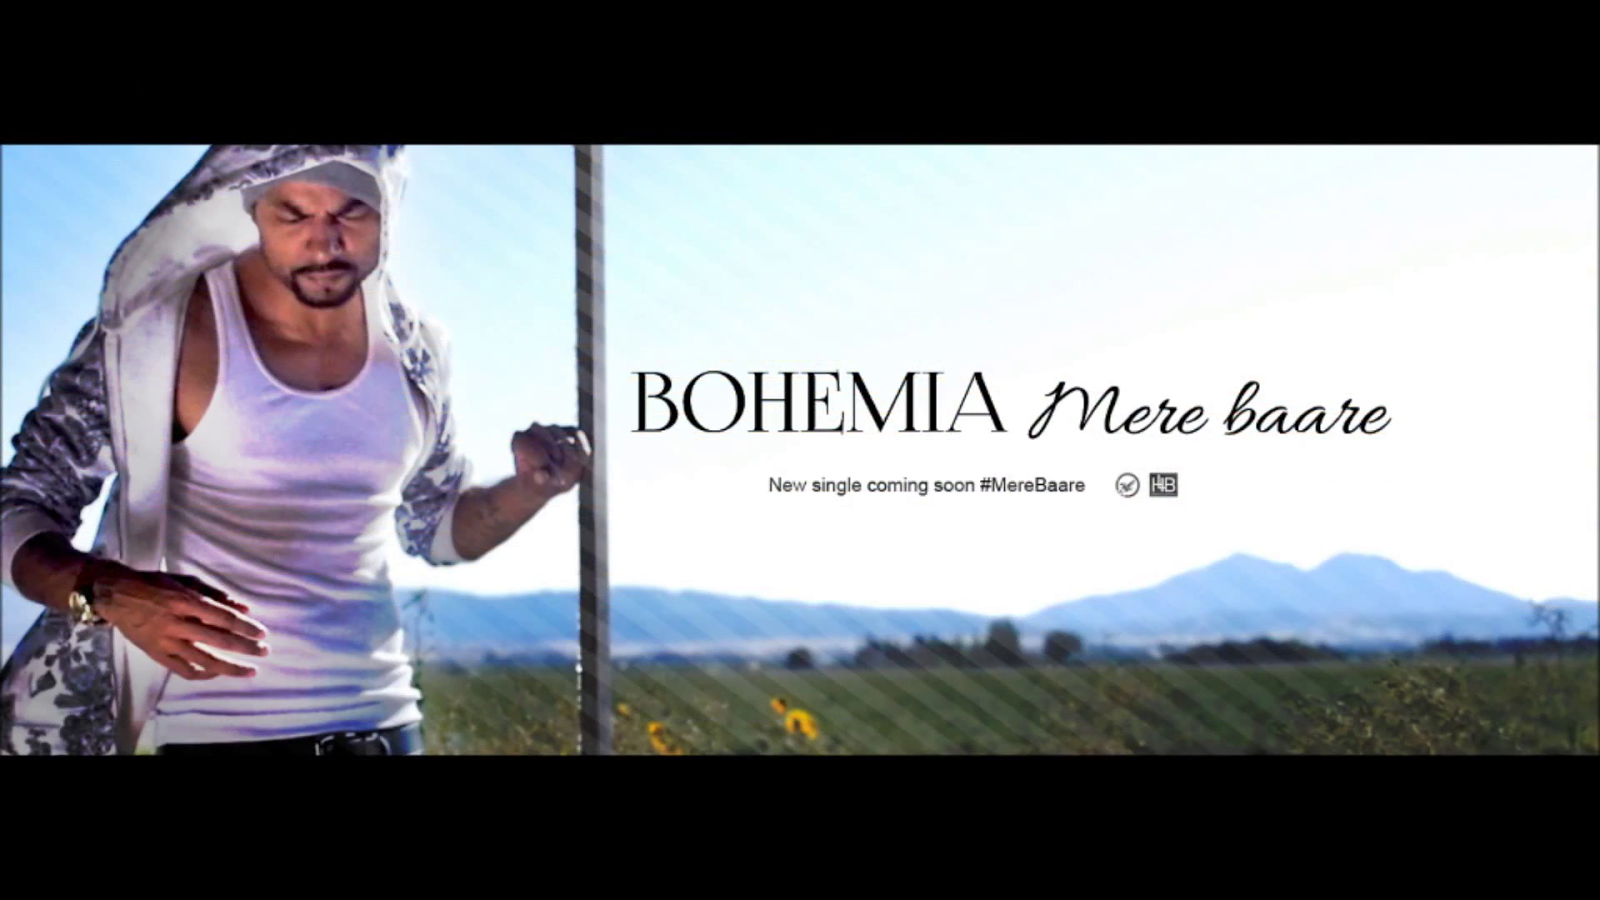 BOHEMIA talks about Mere Baare (Video) - pesa nasha pyar - desi hiphop